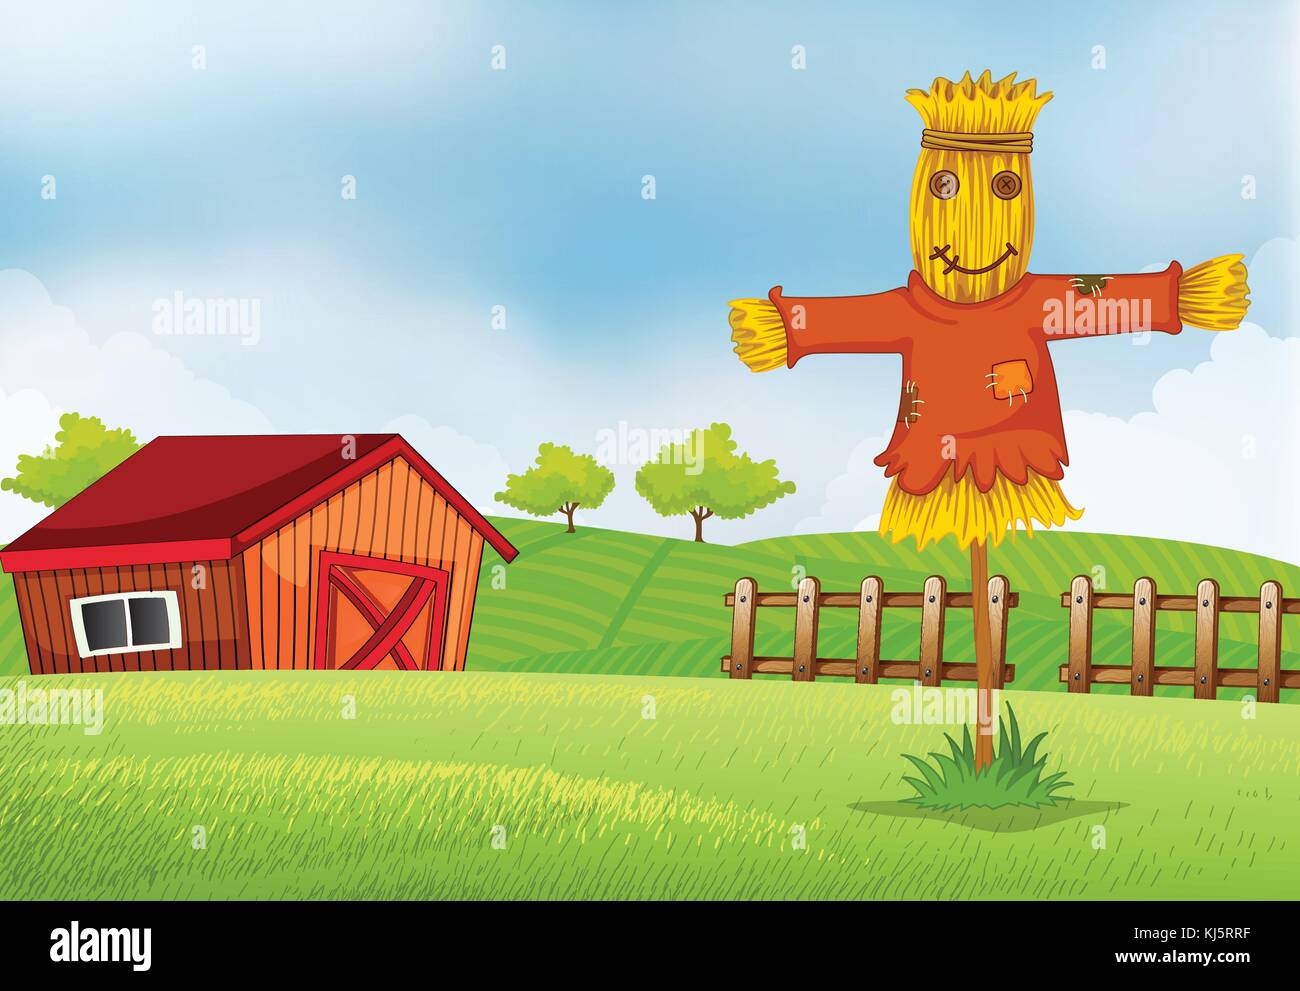 Illustration of a farm with a barn and a scarecrow - Stock Vector